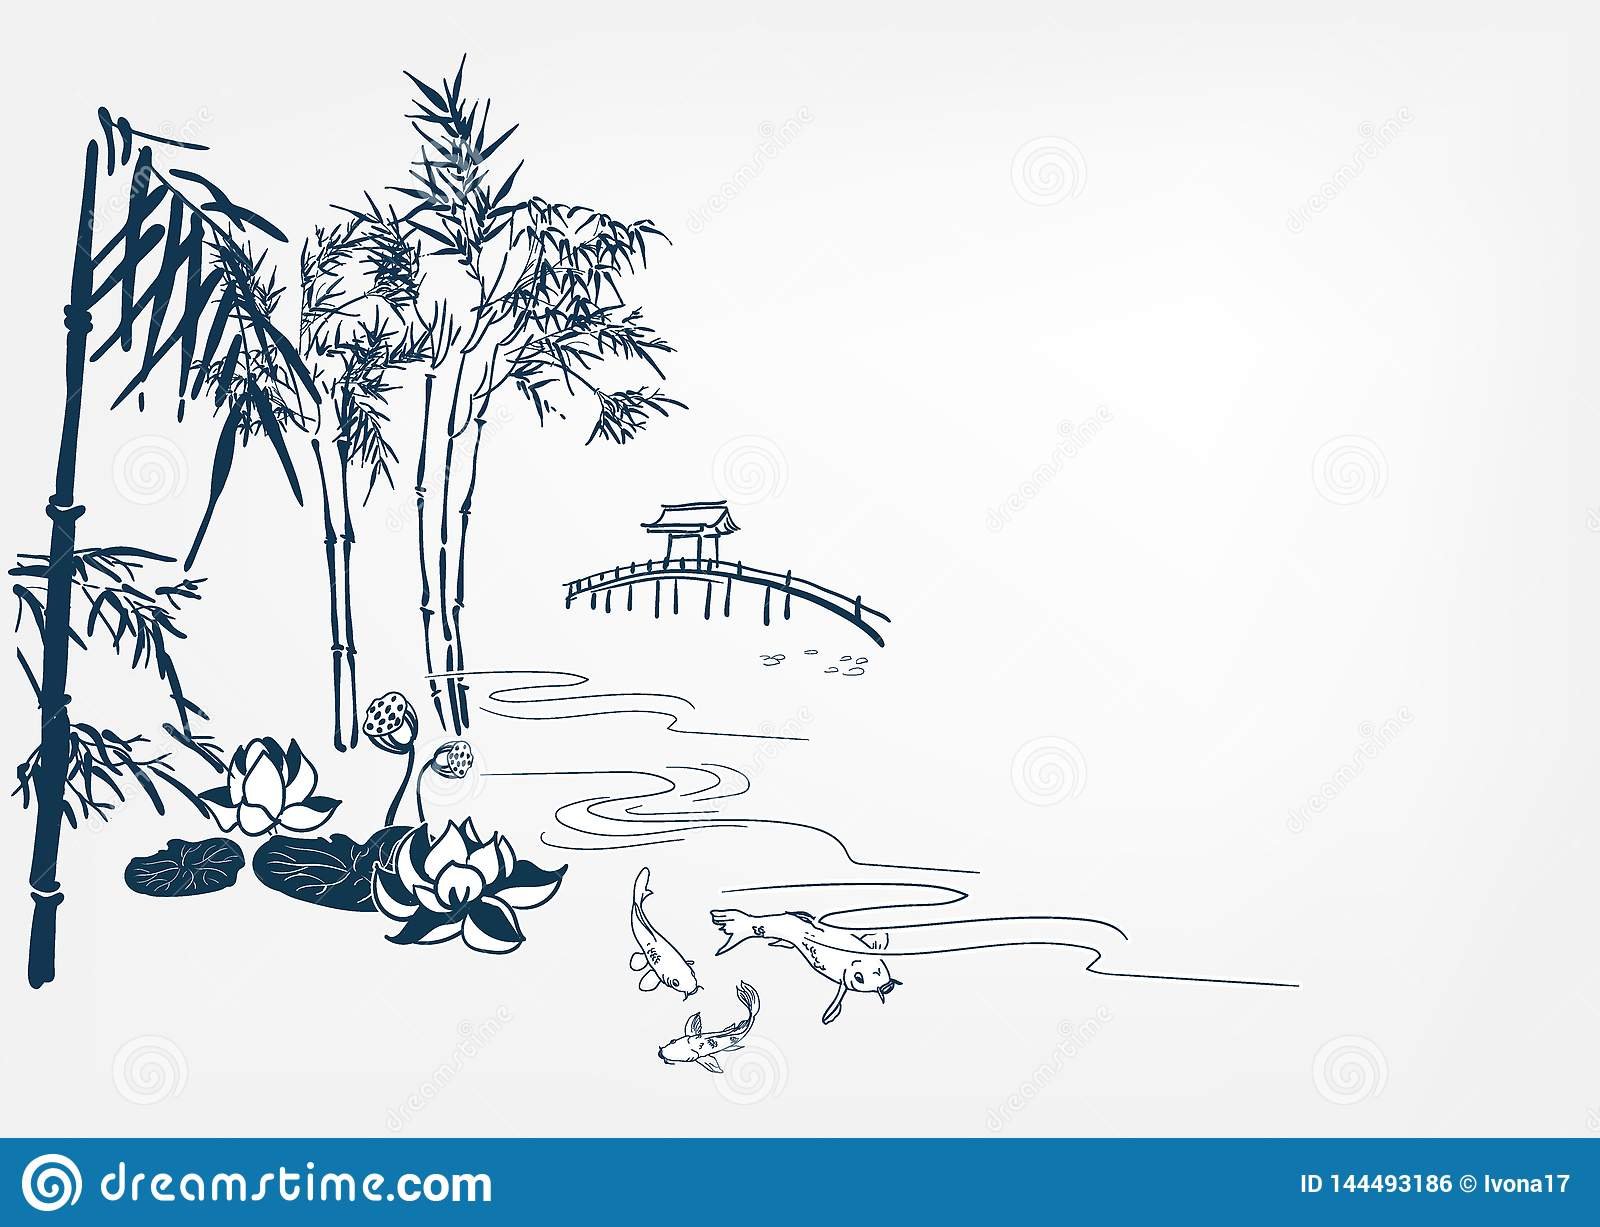 japanese vector landscape background chinese card river stock illustration illustration of sketch sumi 144493186 https www dreamstime com japanese vector landscape background chinese card river image144493186